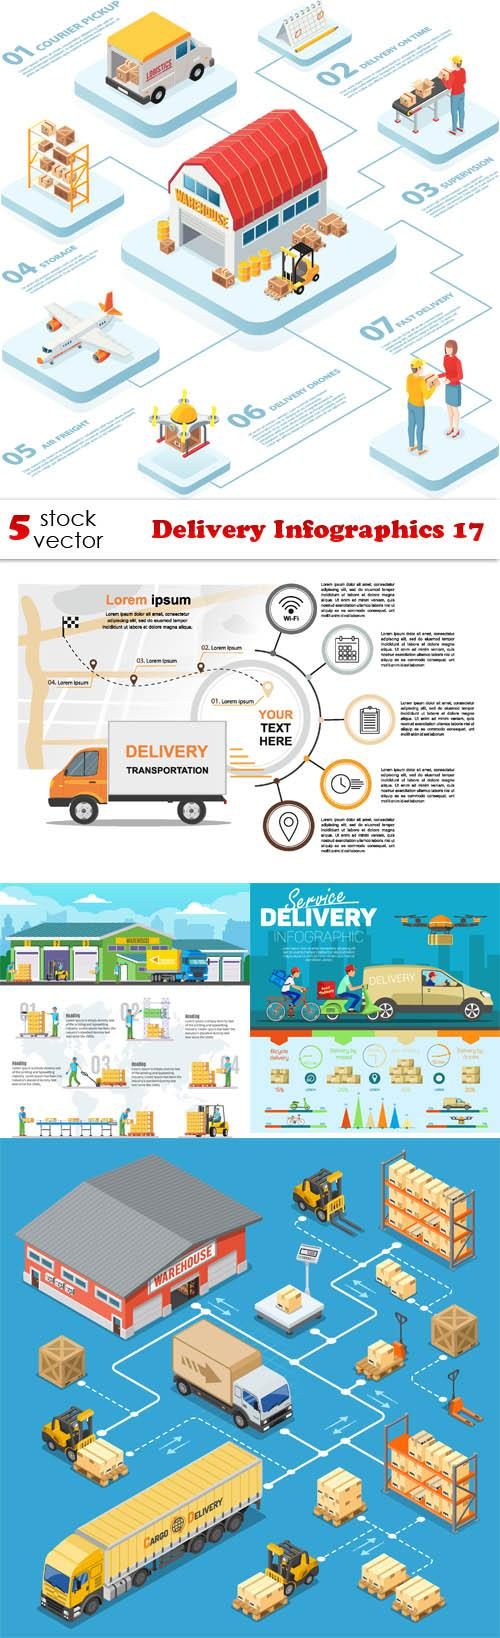 Delivery Infographics 17